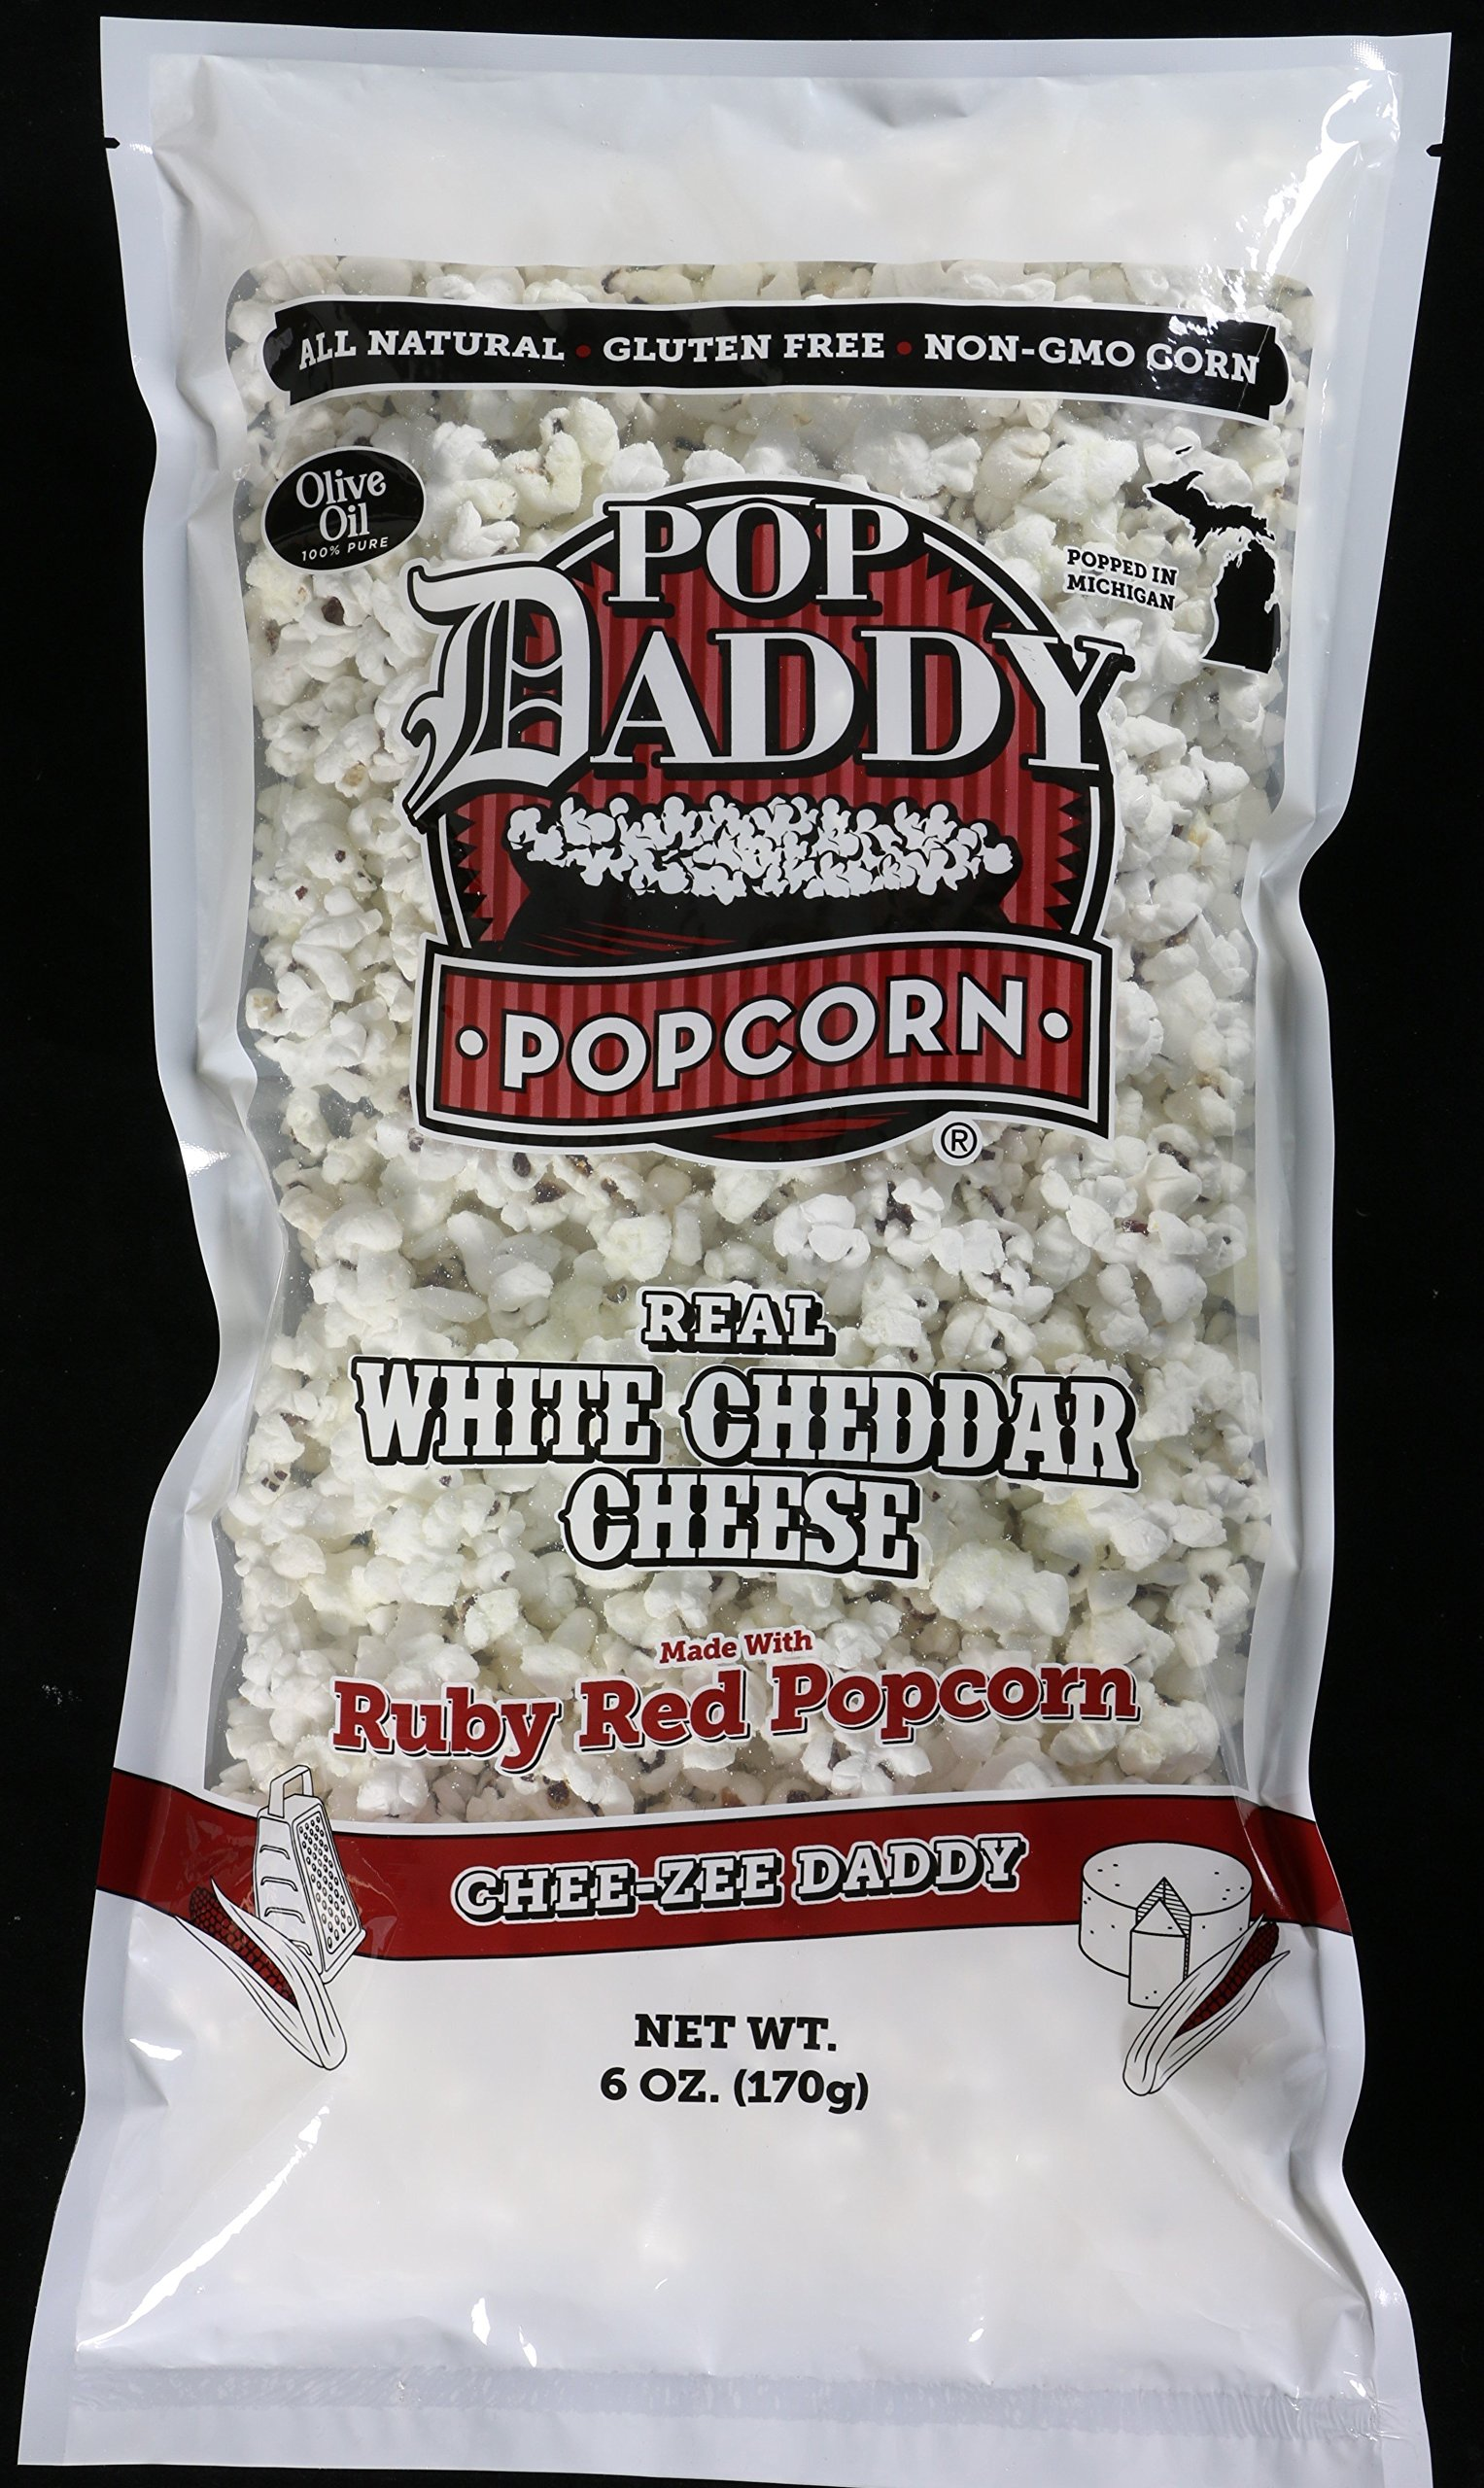 Pop Daddy Popcorn - Real White Cheddar Cheese - 3 Pack - Made with Ruby Red Popcorn